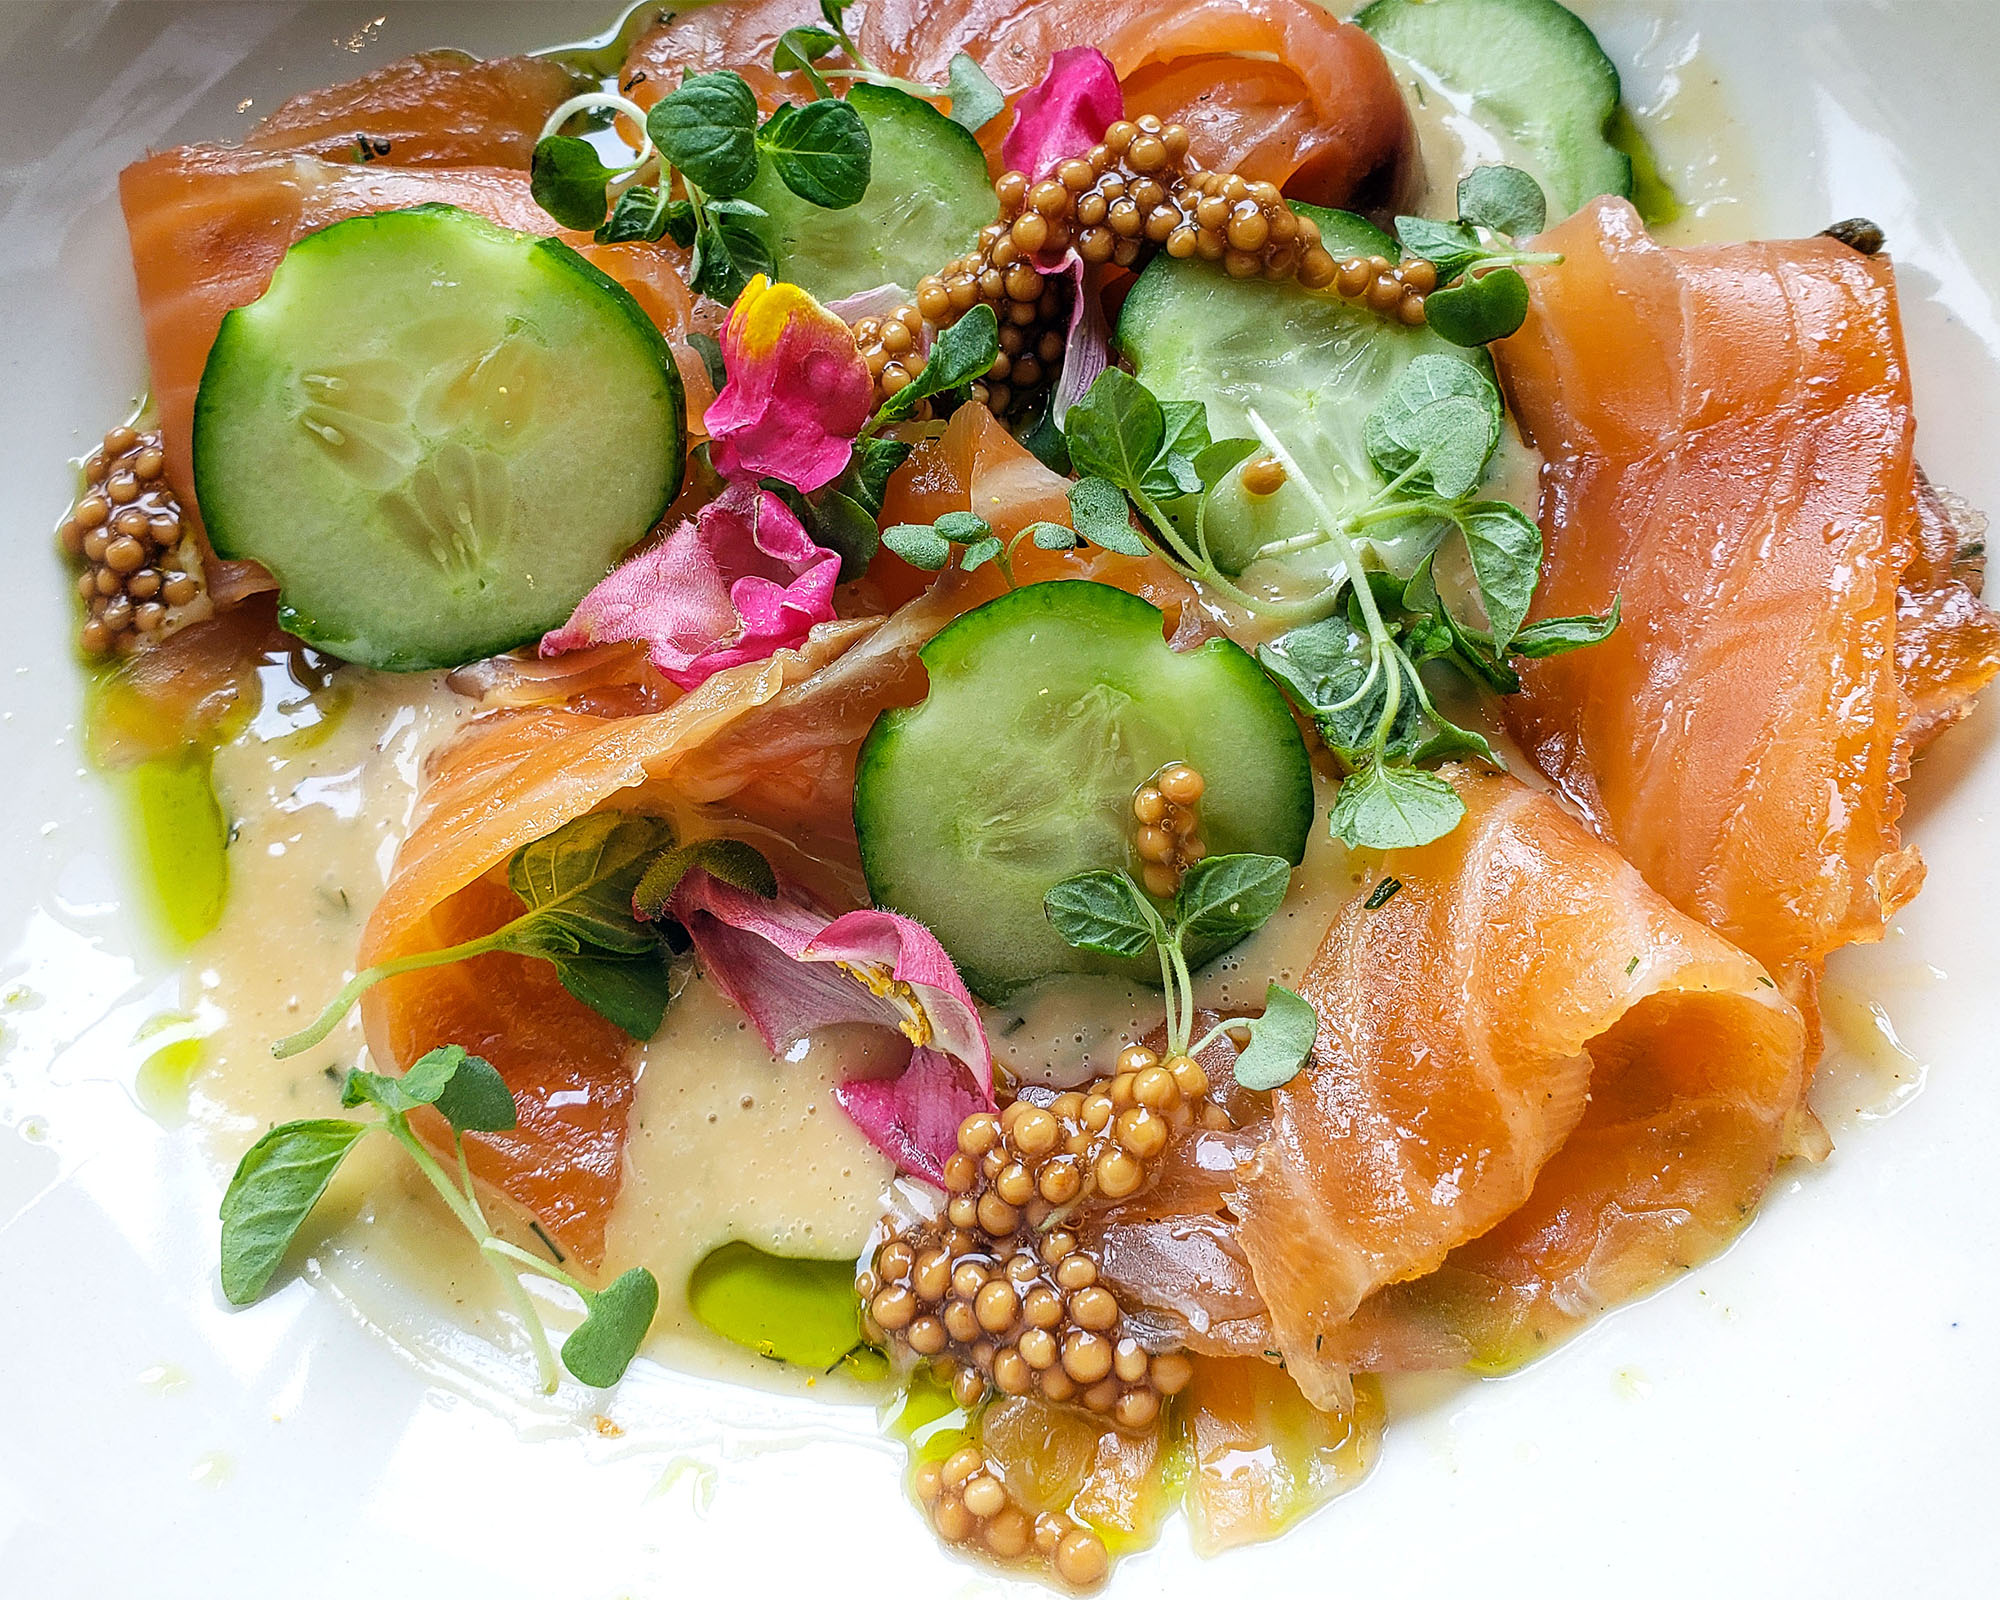 Gravlax cured salmon with mustard dill sauce at Stockhome Restaurant in Petaluma. heather irwin/PD